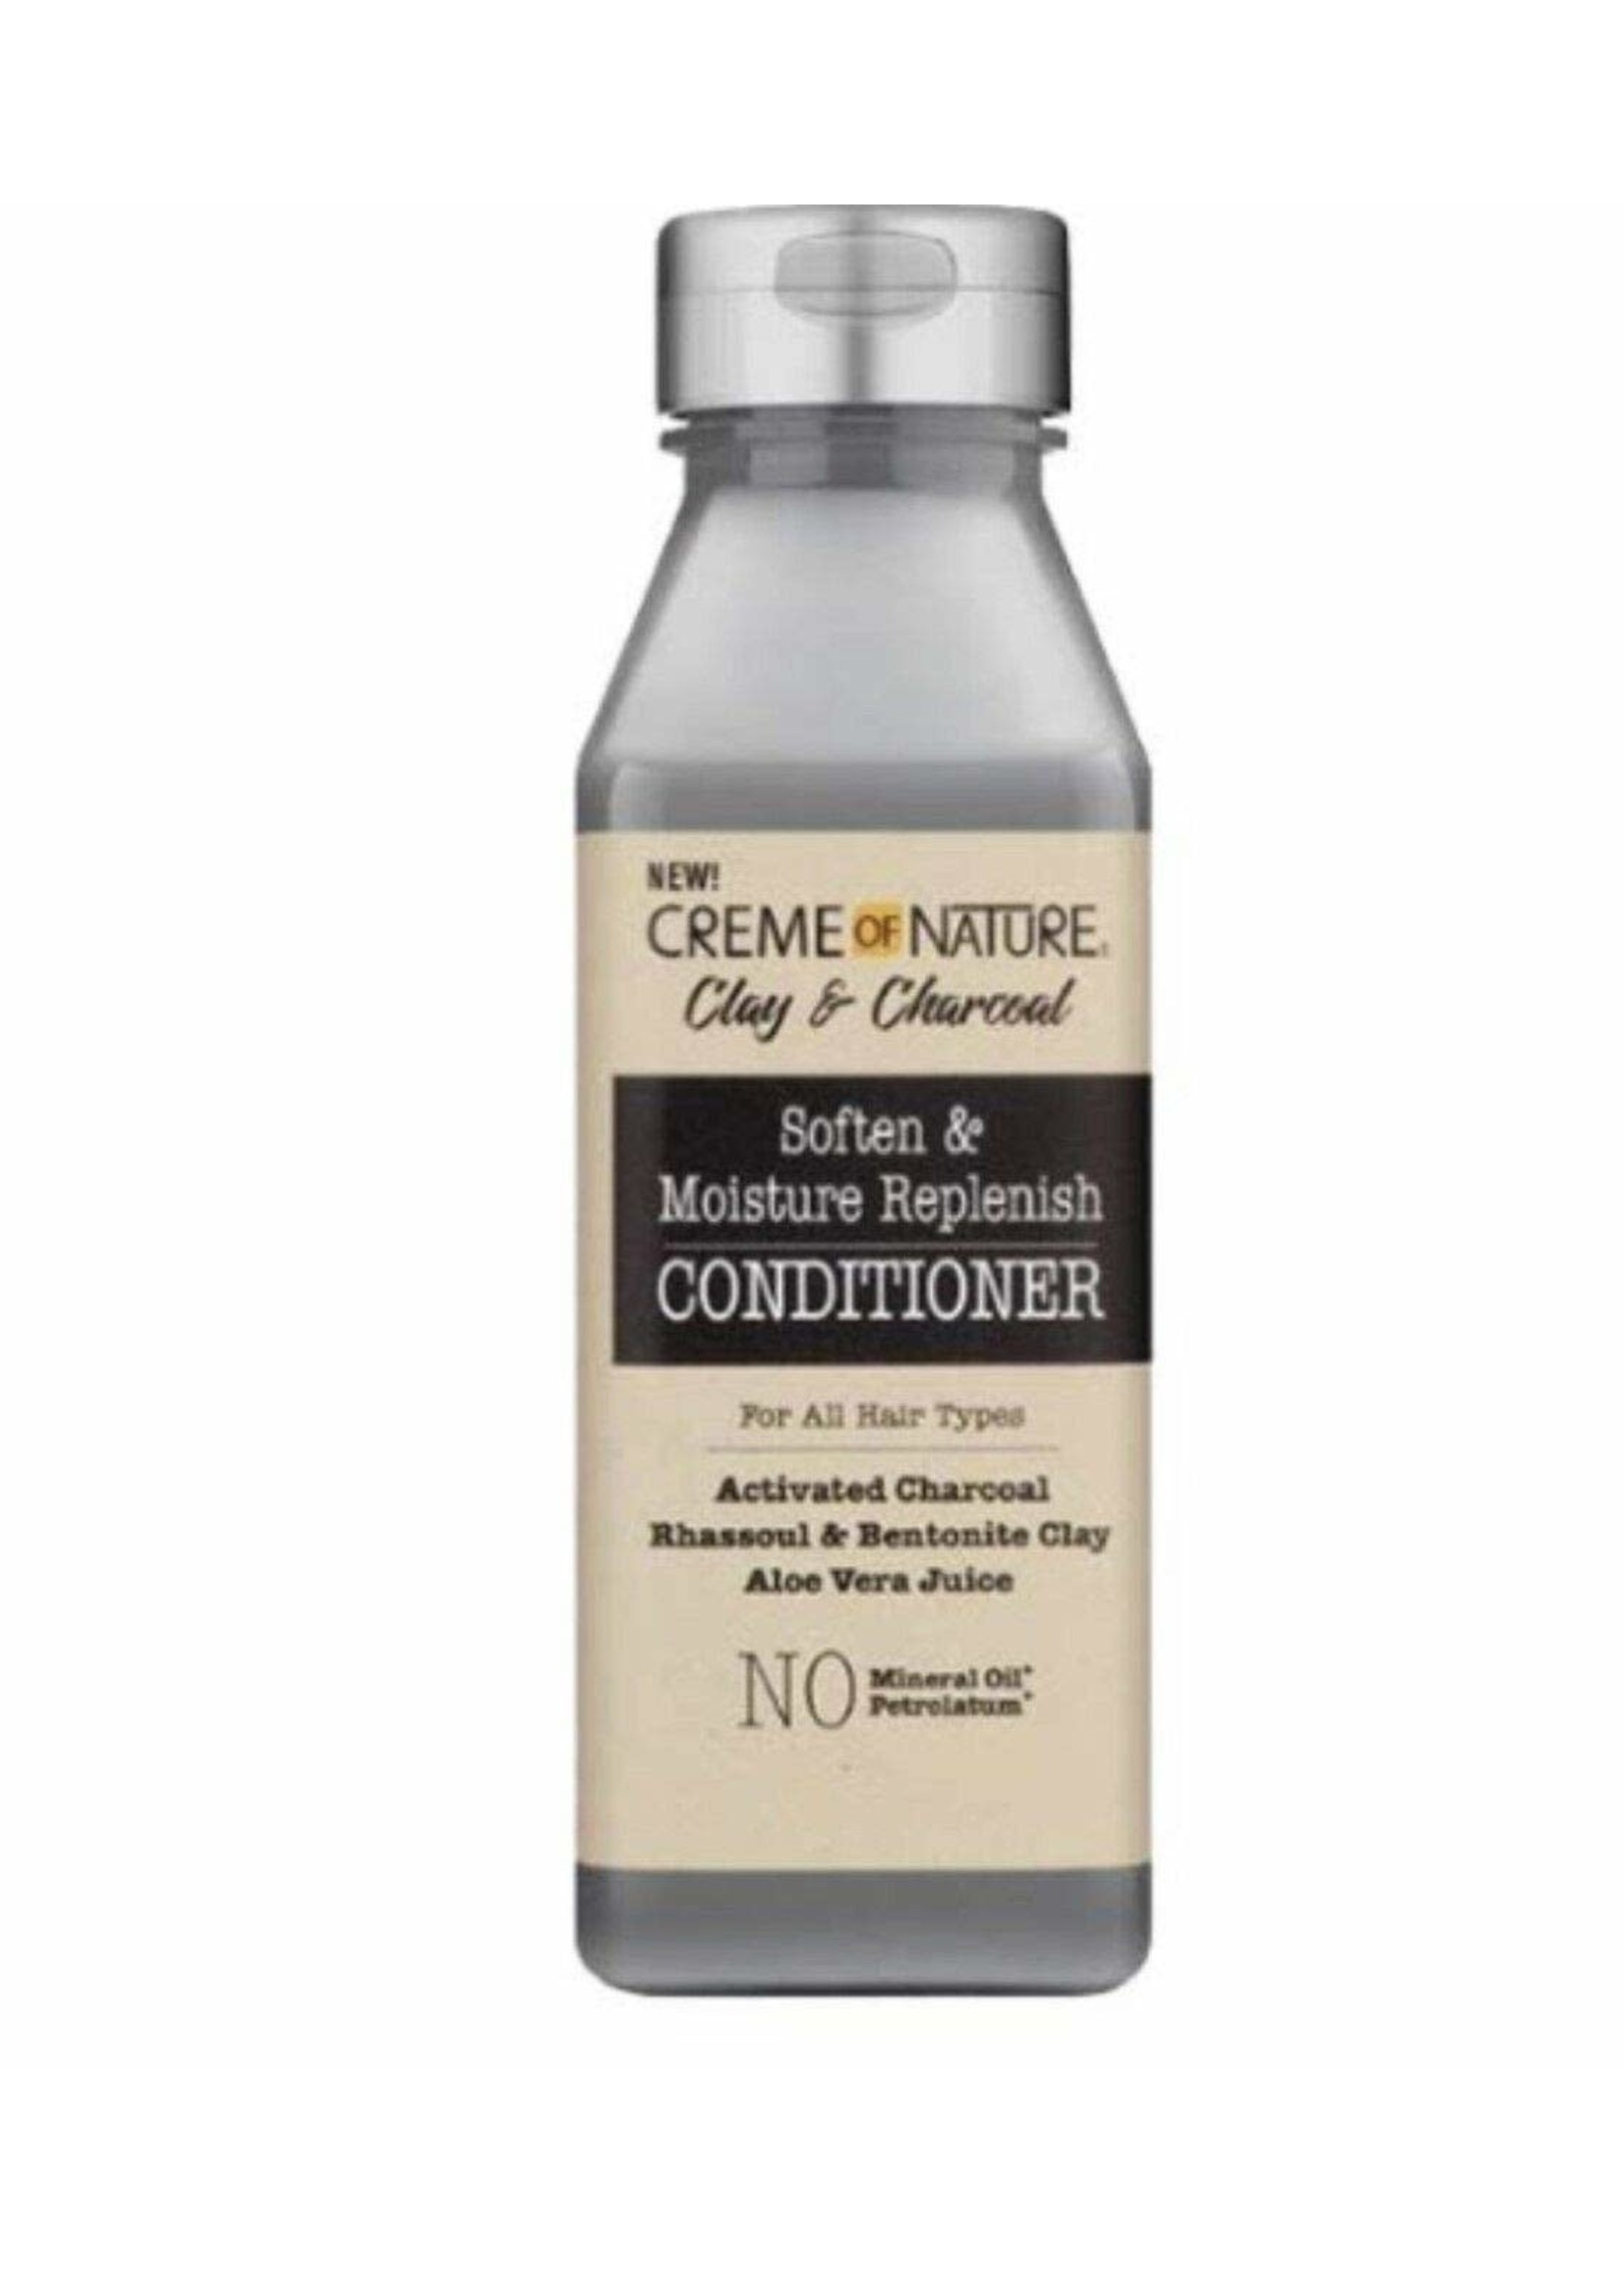 Cream of Nature Clay & Charcoal Conditioner